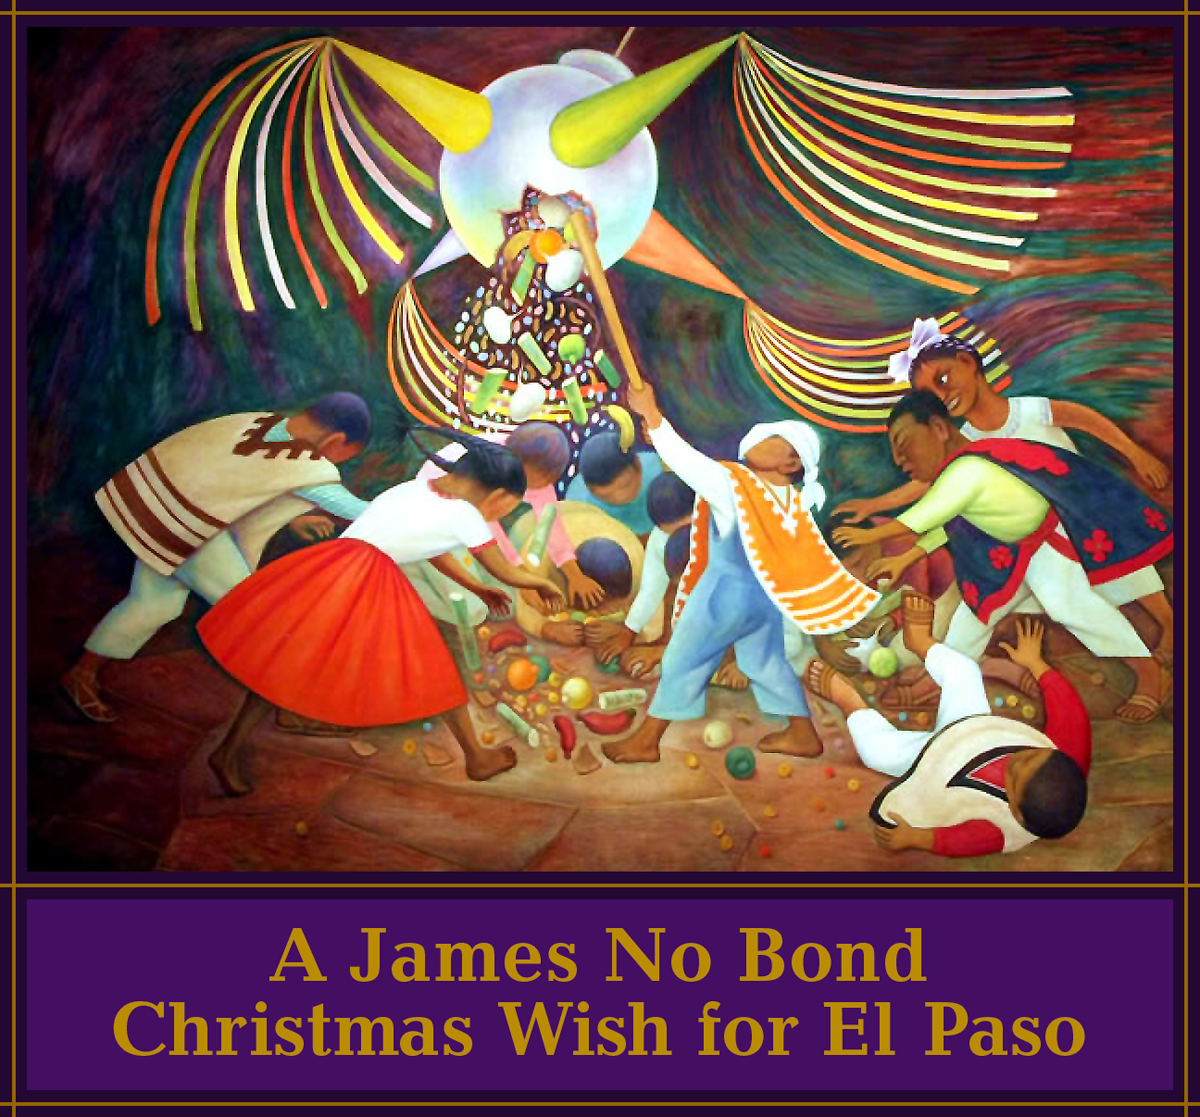 A James No Bond Christmas Wish for El Paso © Jud Burgess